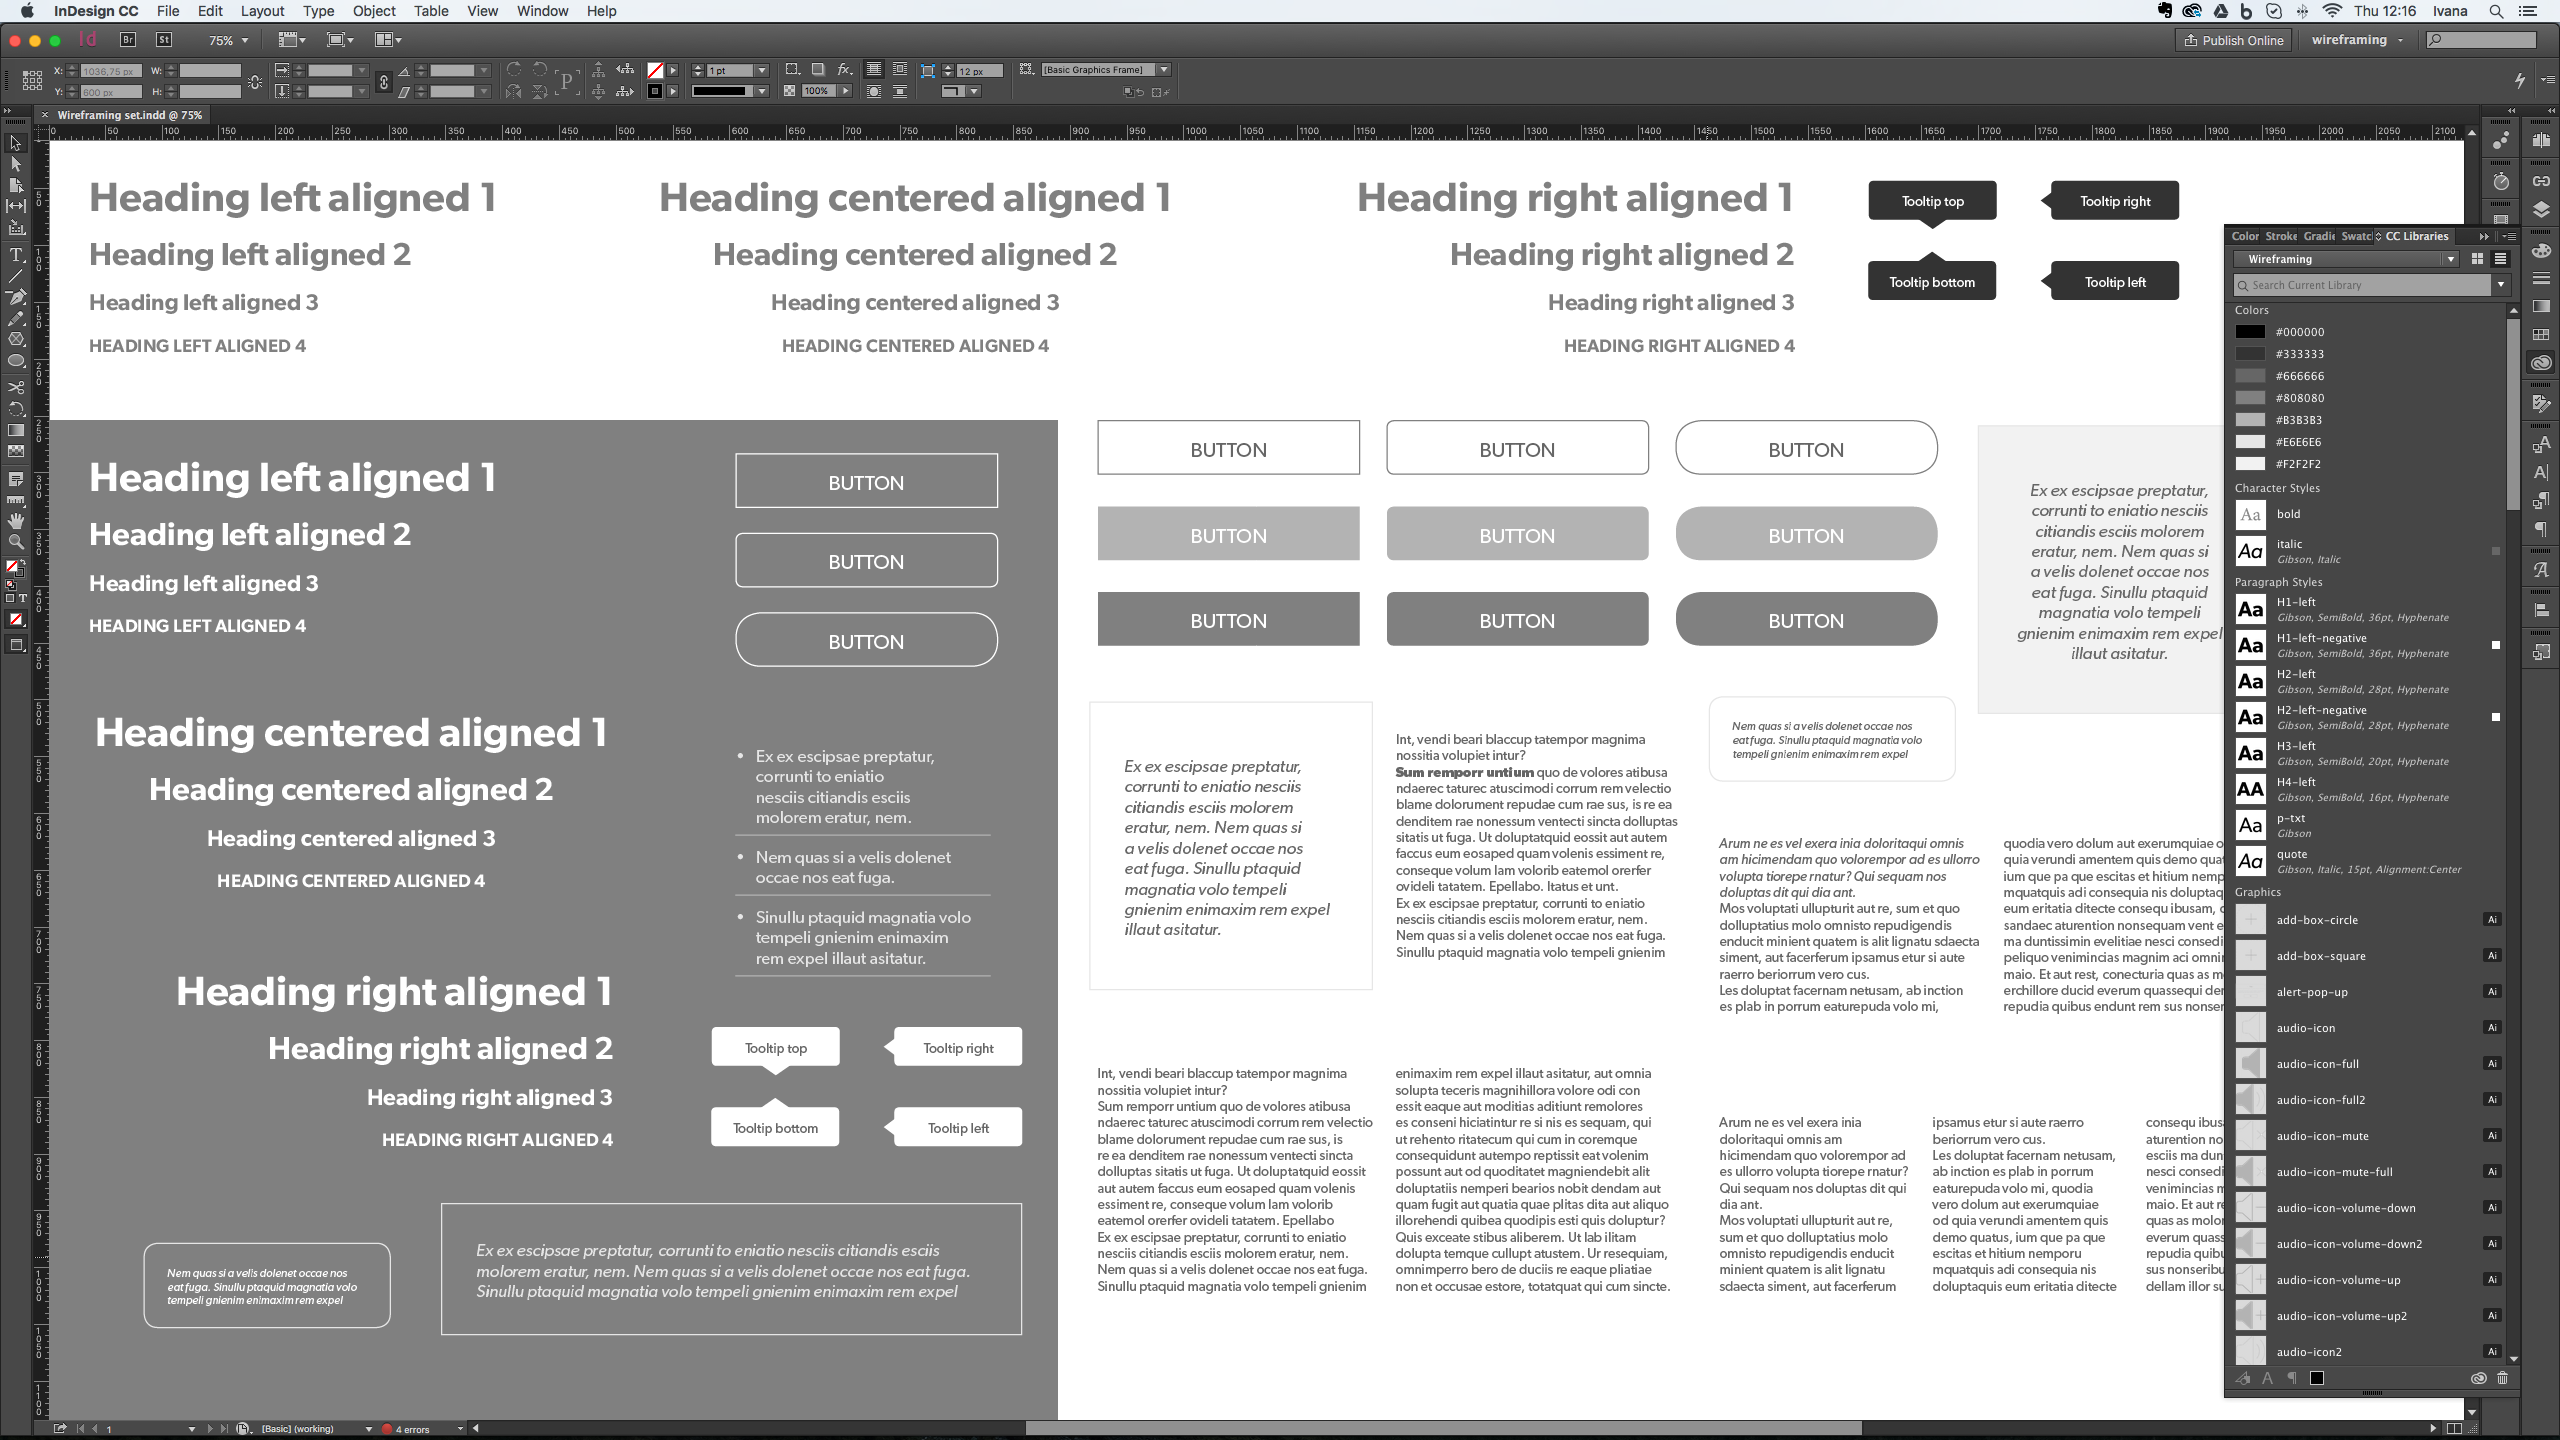 Who knew Adobe CC Could Wireframe